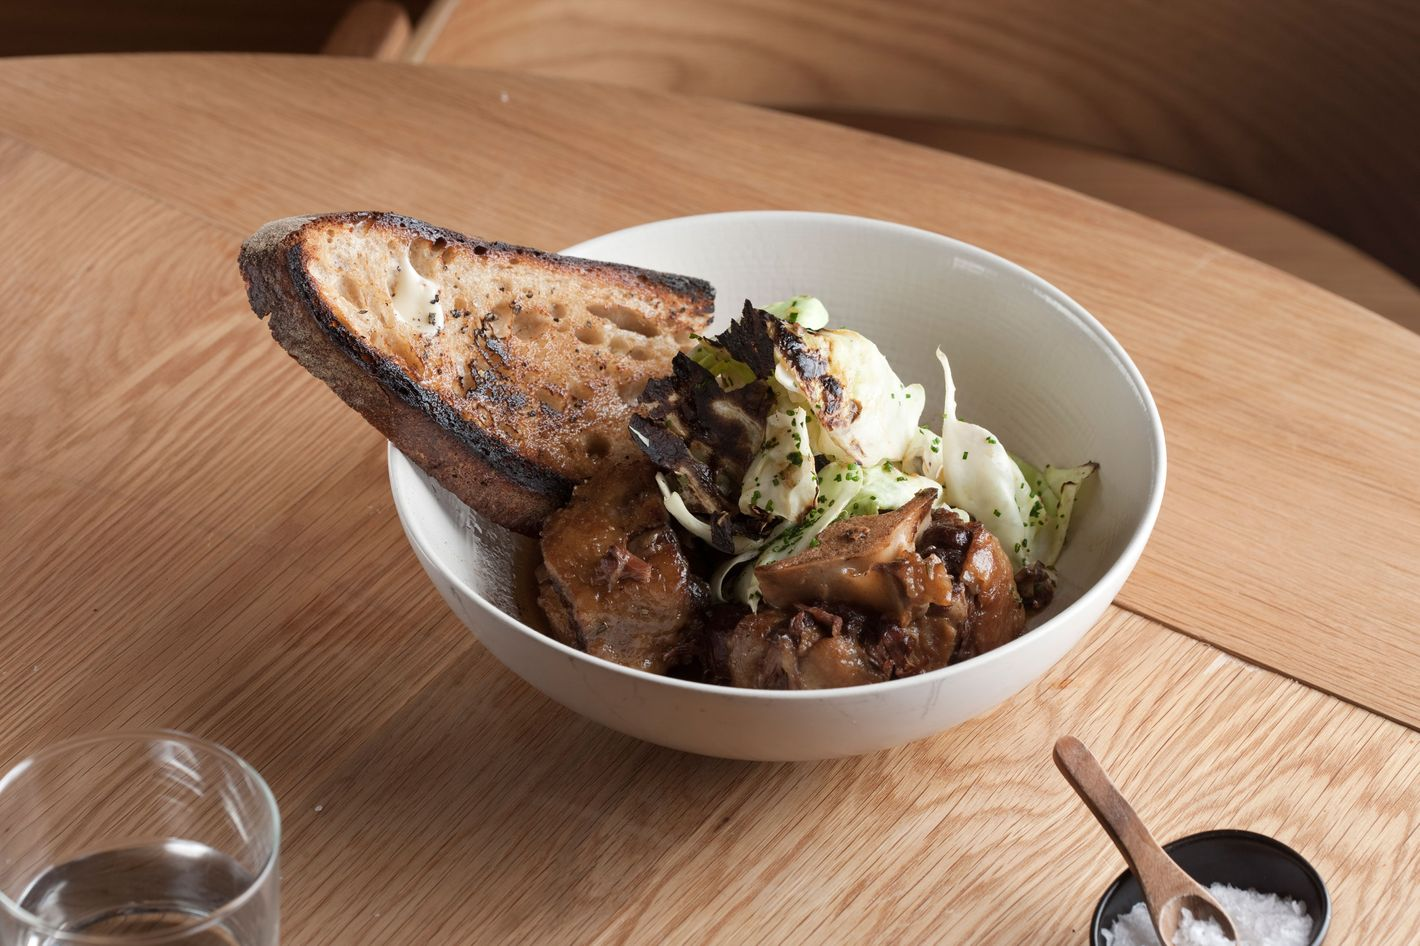 Glazed oxtails, marinated cabbage, sourdough. Photo: Melissa Hom